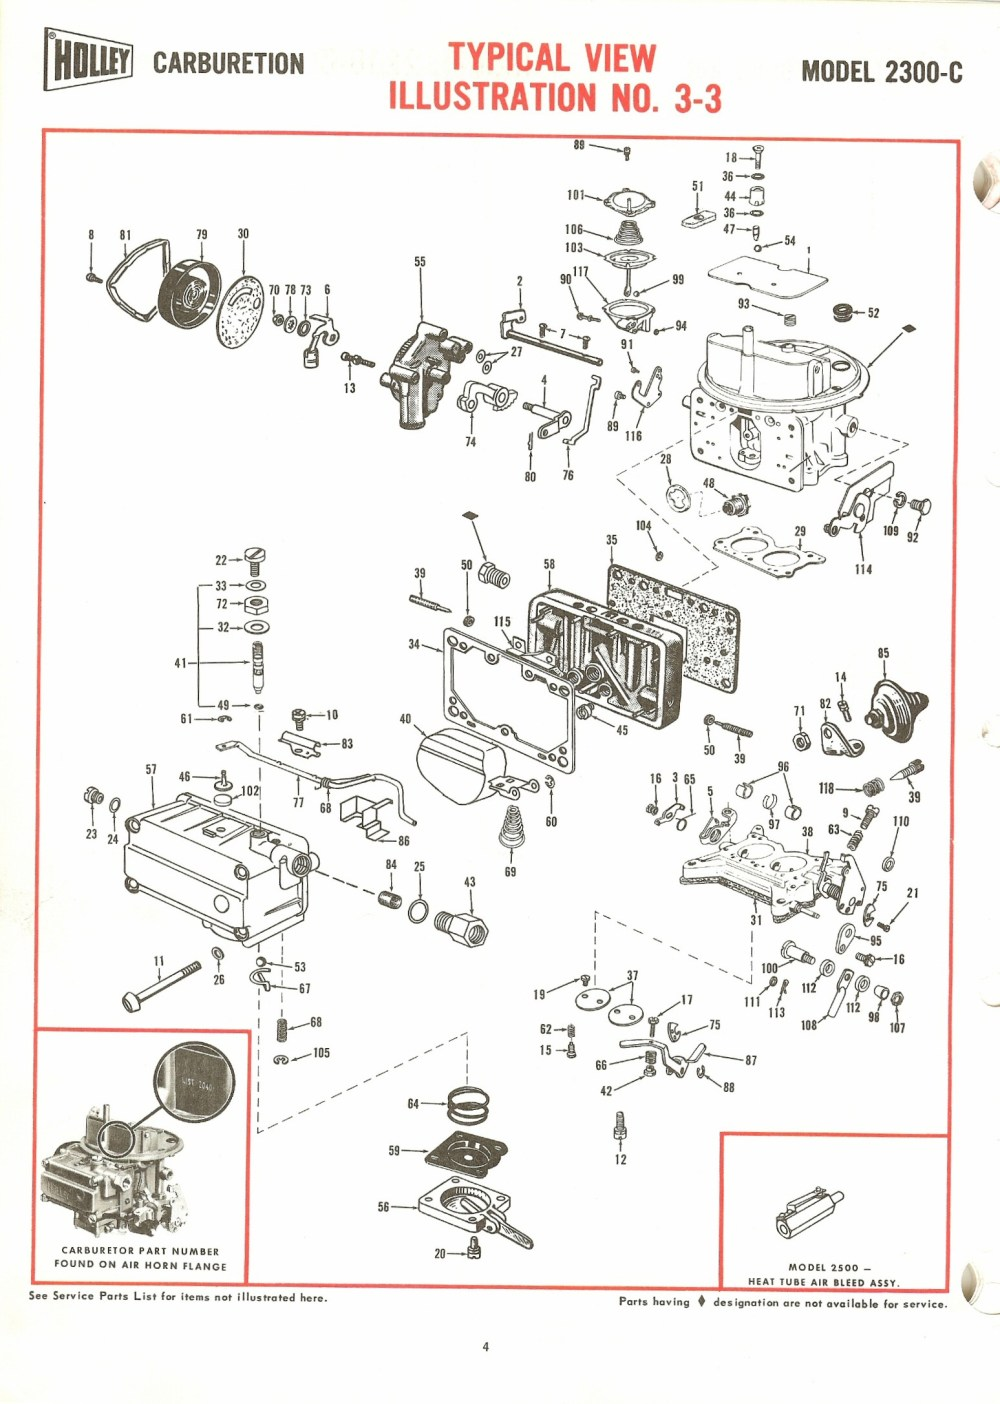 medium resolution of holley 2300c exploded diagrams the old car manual project holley 1940 diagram holley exploded diagram